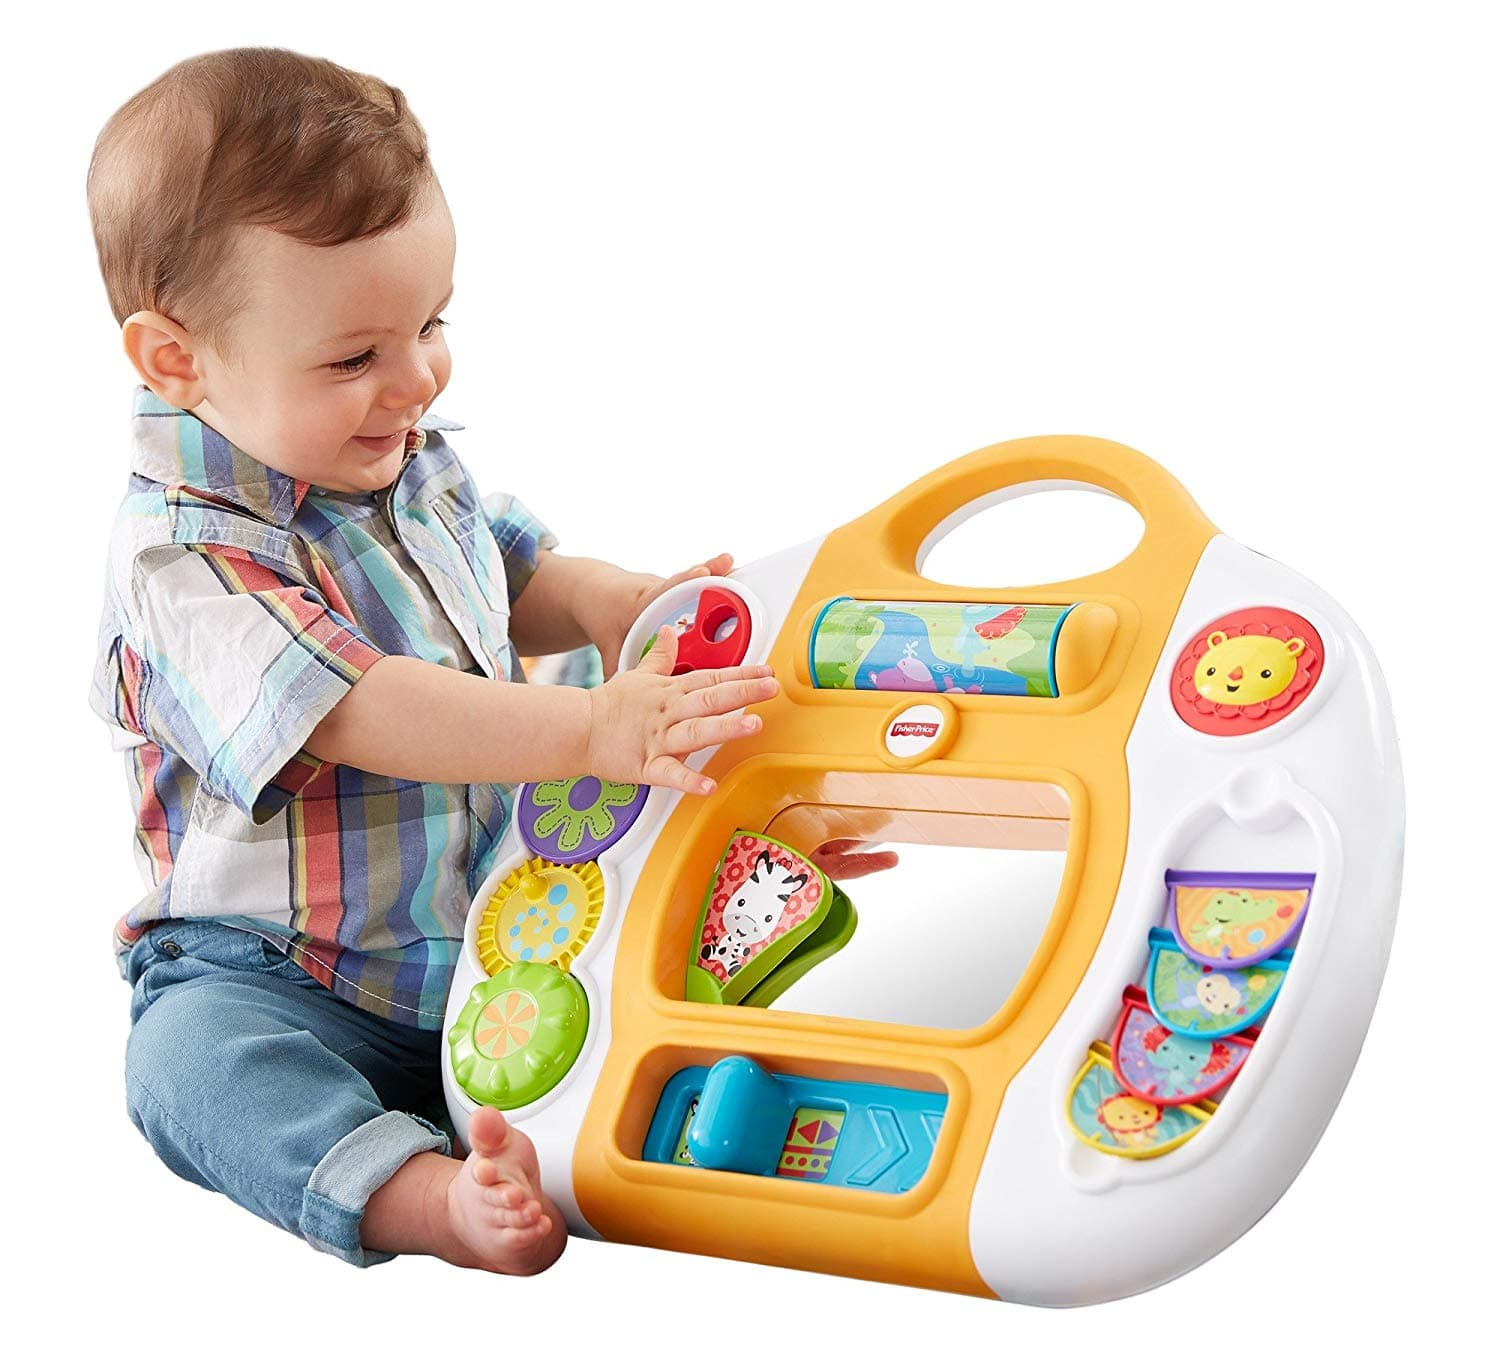 Fisher-Price Rainforest Friends Activity Panel $7.19